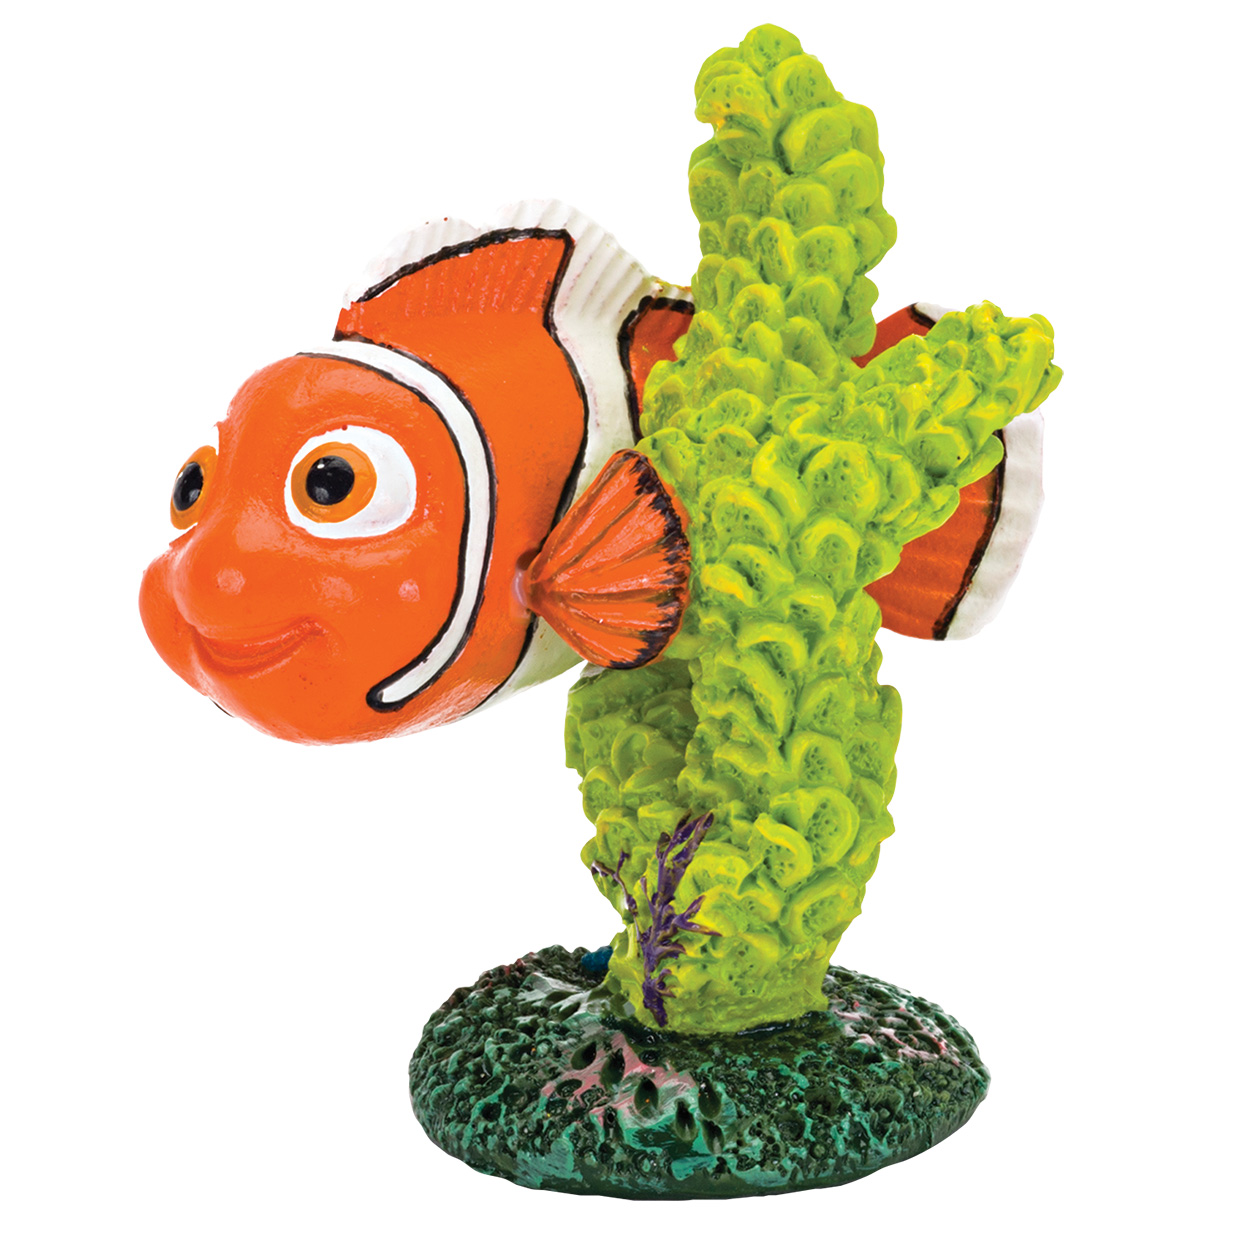 Penn Plax Finding Dory Nemo with Green Coral - Medium